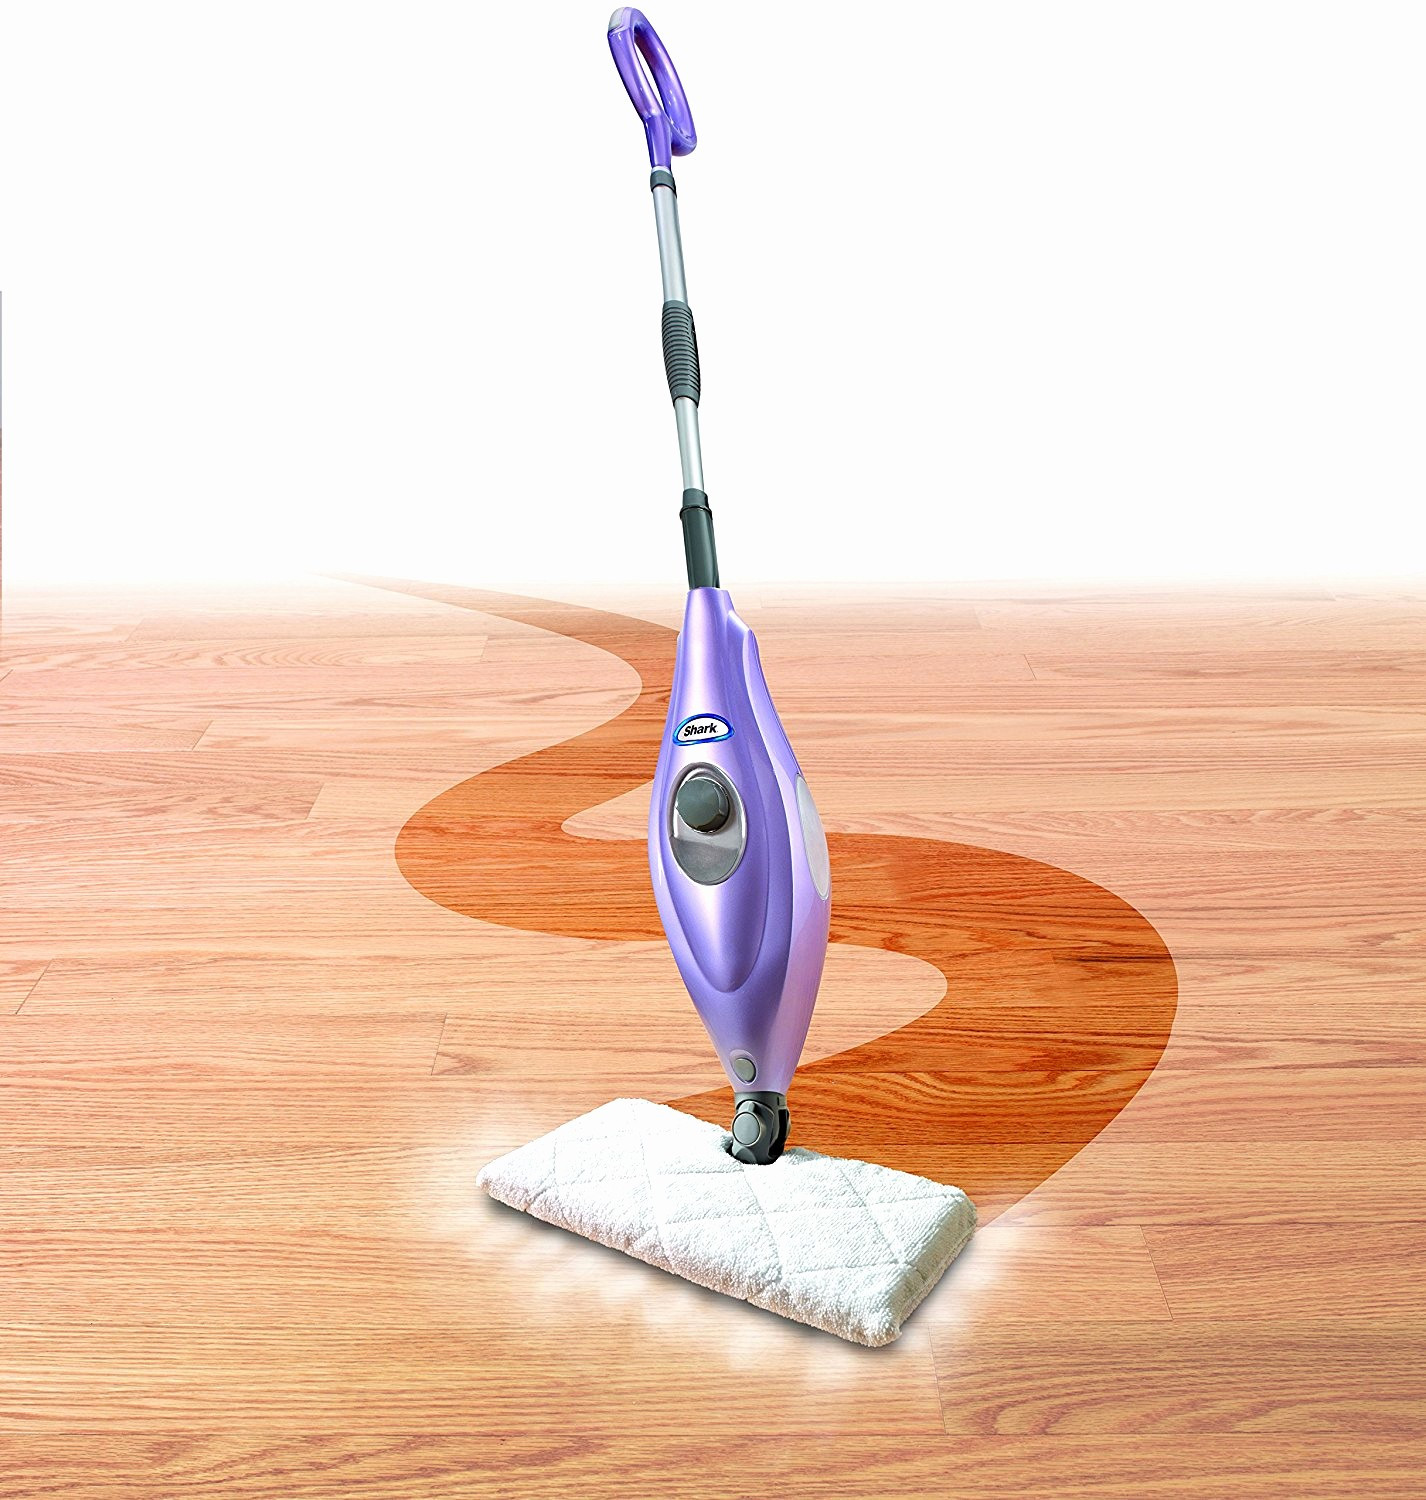 the shark hardwood floor cleaner of 19 awesome steam clean hardwood floors images dizpos com for steam clean hardwood floors inspirational 50 luxury bona hardwood floor graphics 50 s gallery of 19